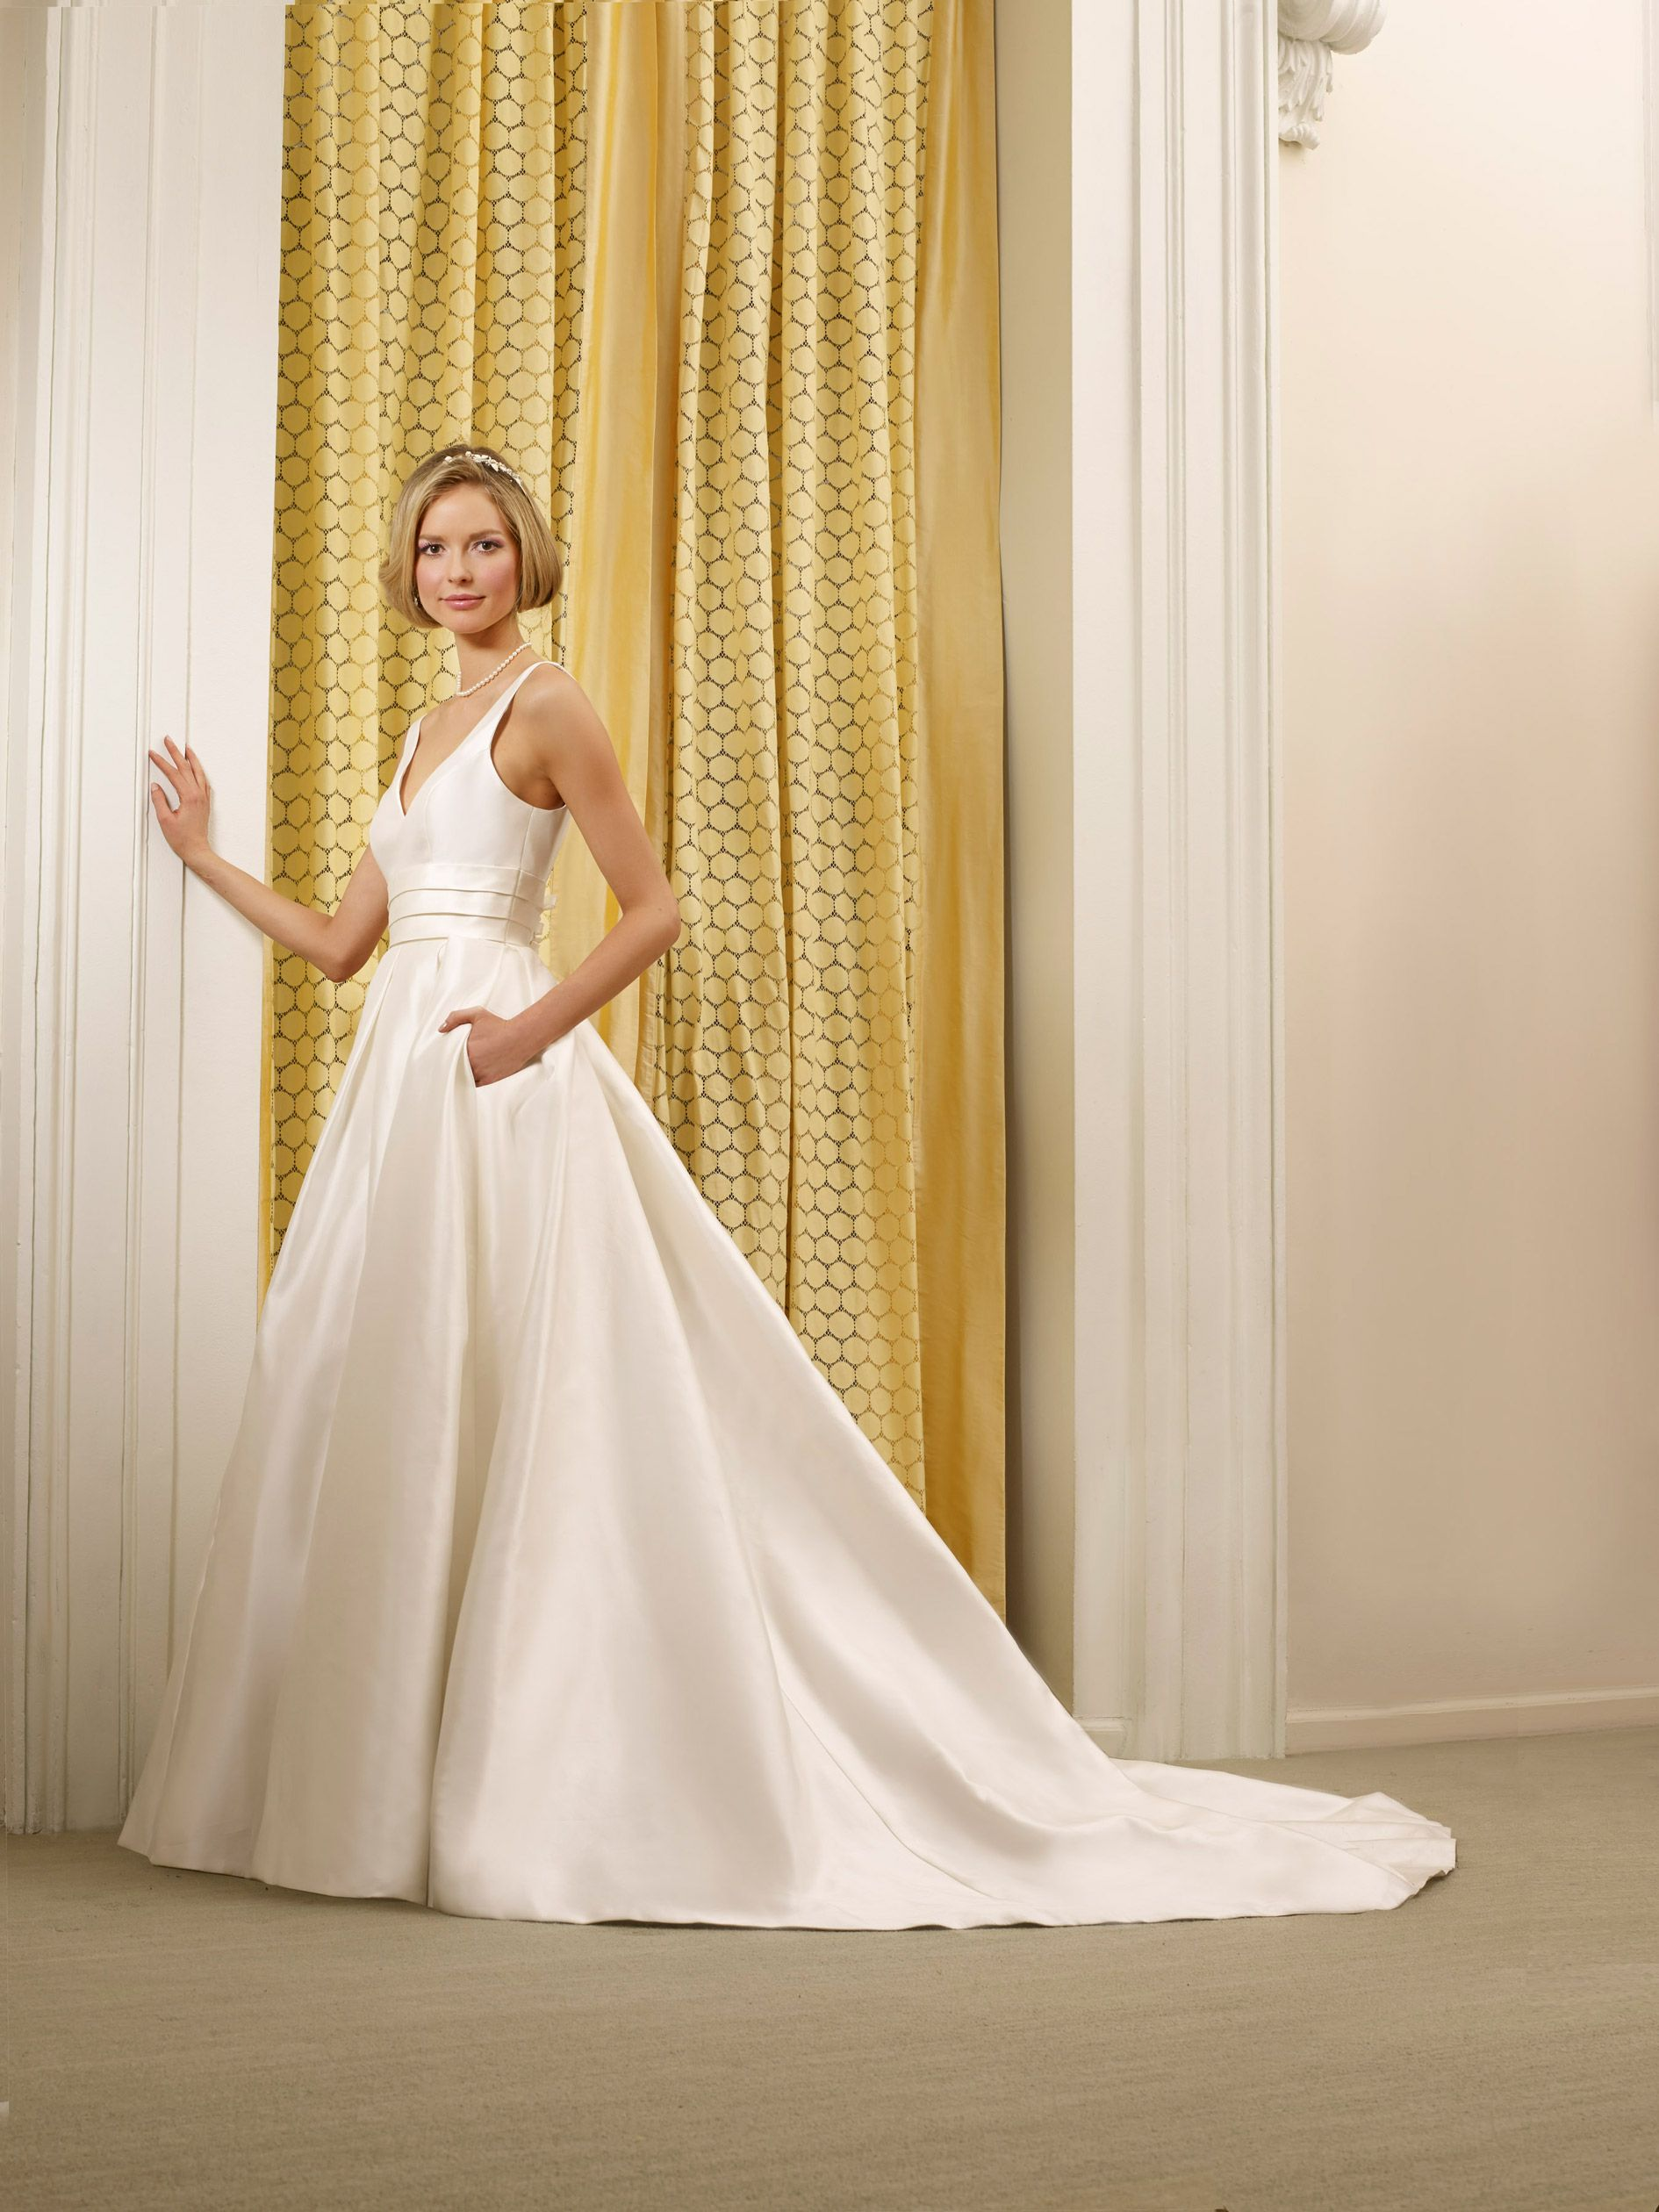 Wedding dress with bow on back  savannahbackview  My Bride Style Board  Pinterest  chats